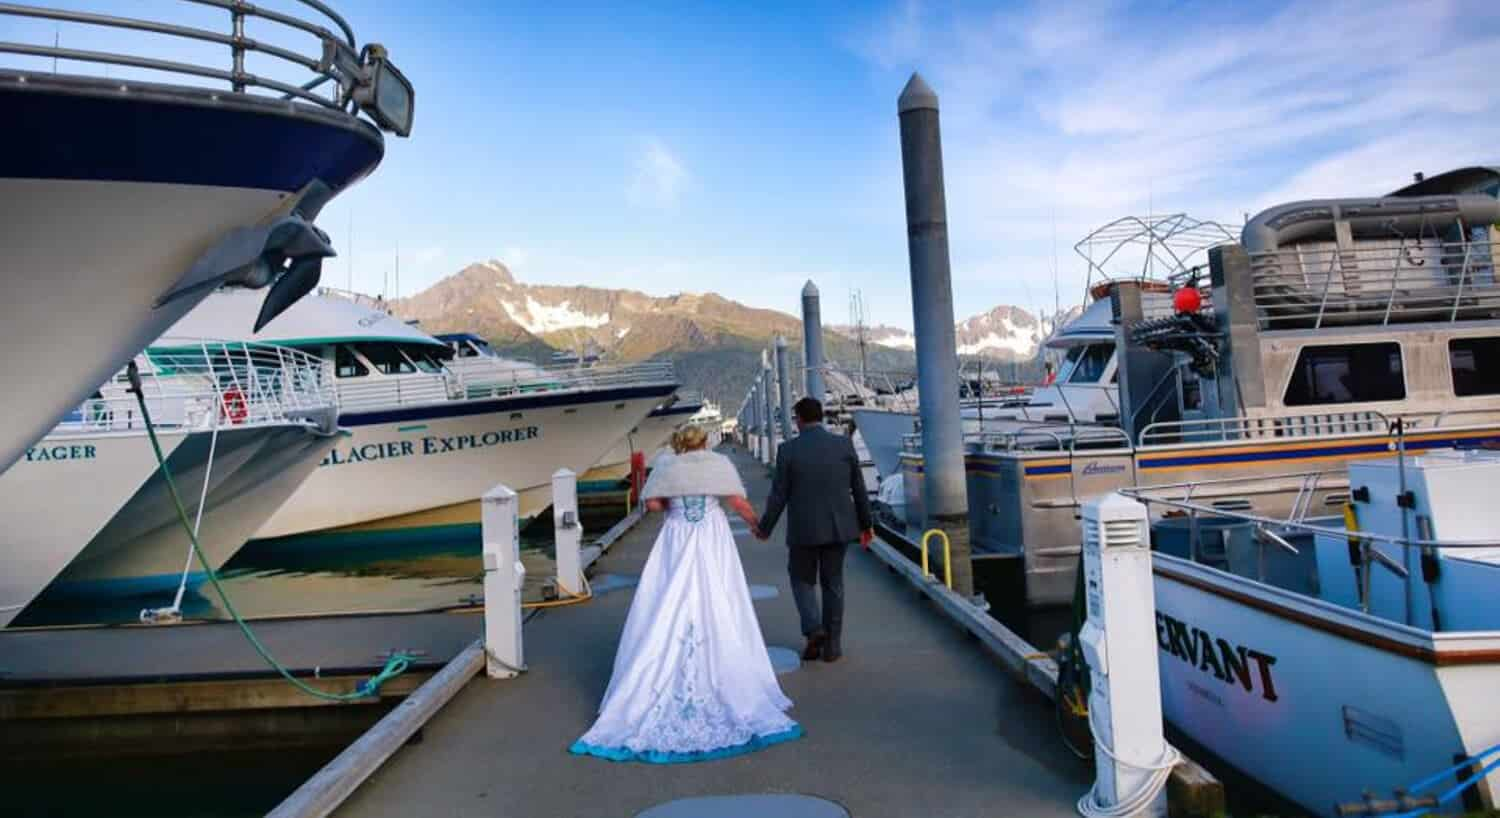 bride wearing shawl over gown and groom holding hands walking along pier with large boats anchored on both sides